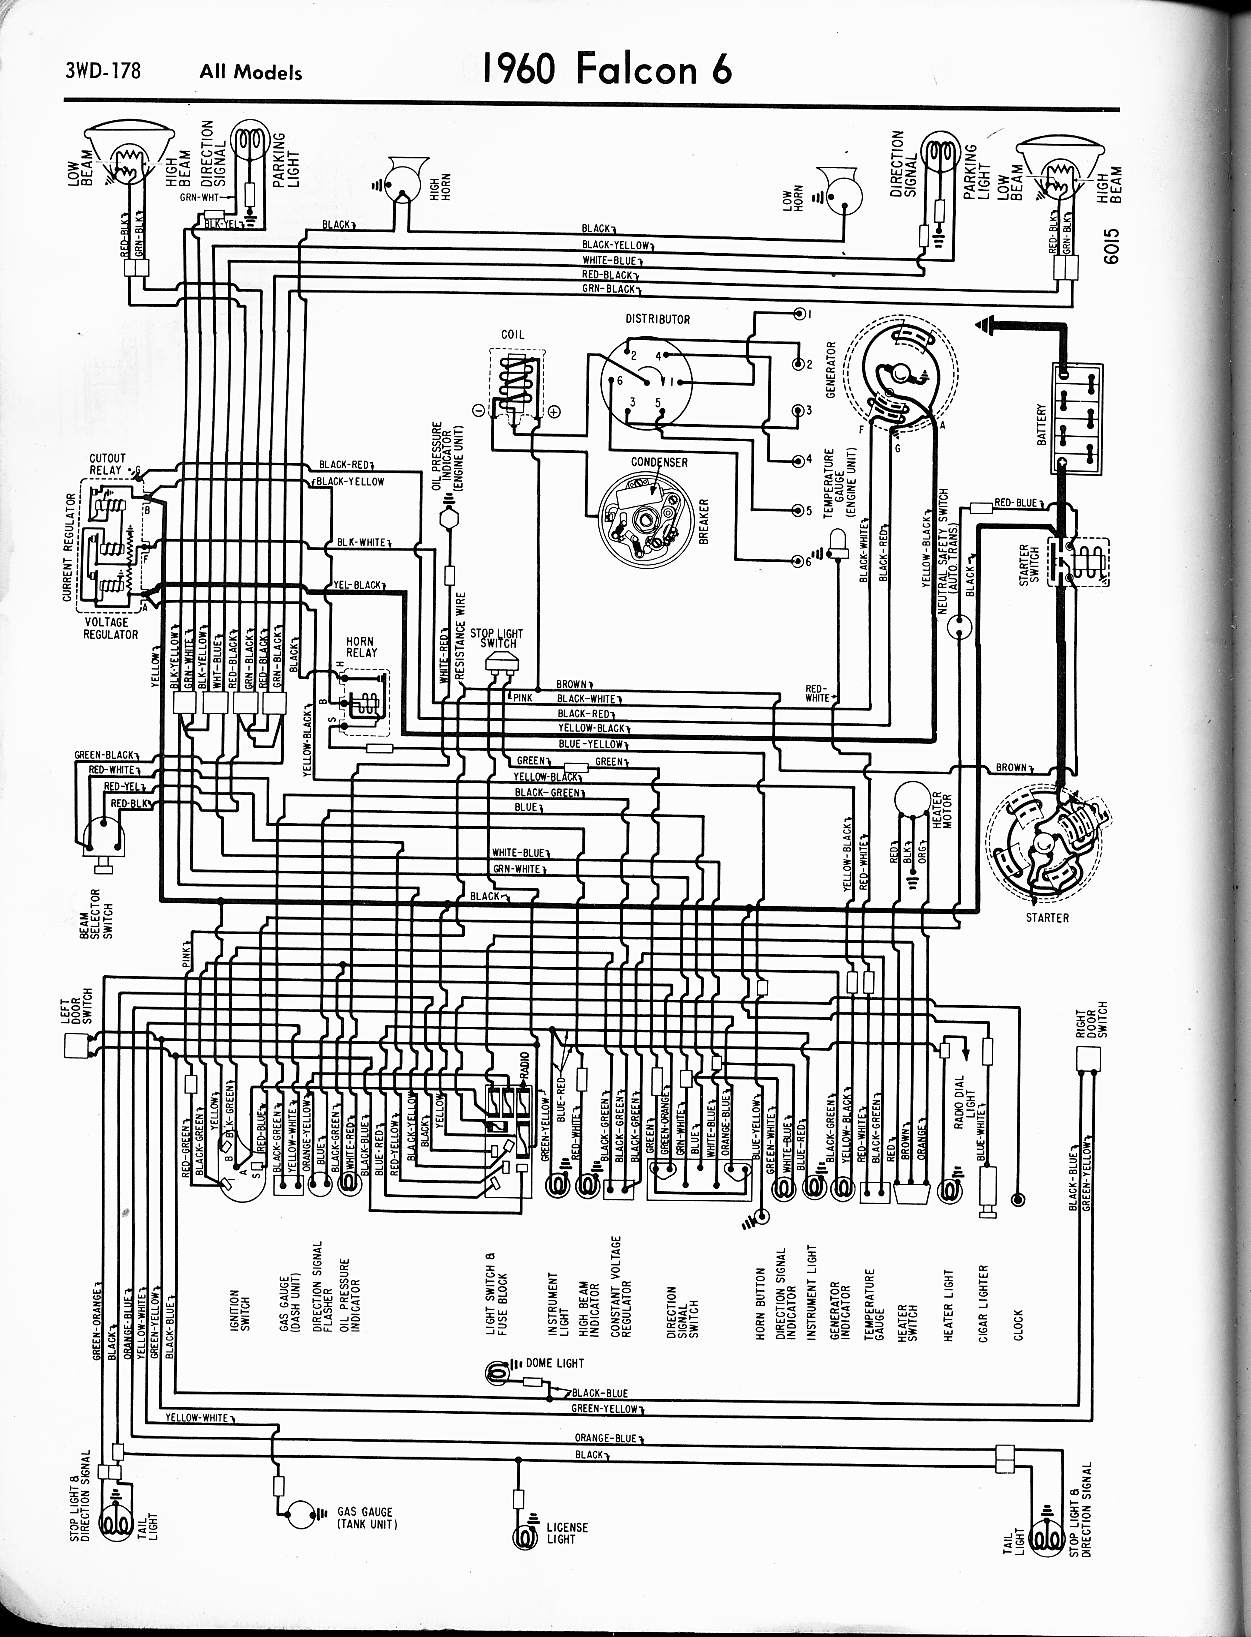 Diagram Gast Wiring Ltd 182 - Enthusiast Wiring Diagrams •